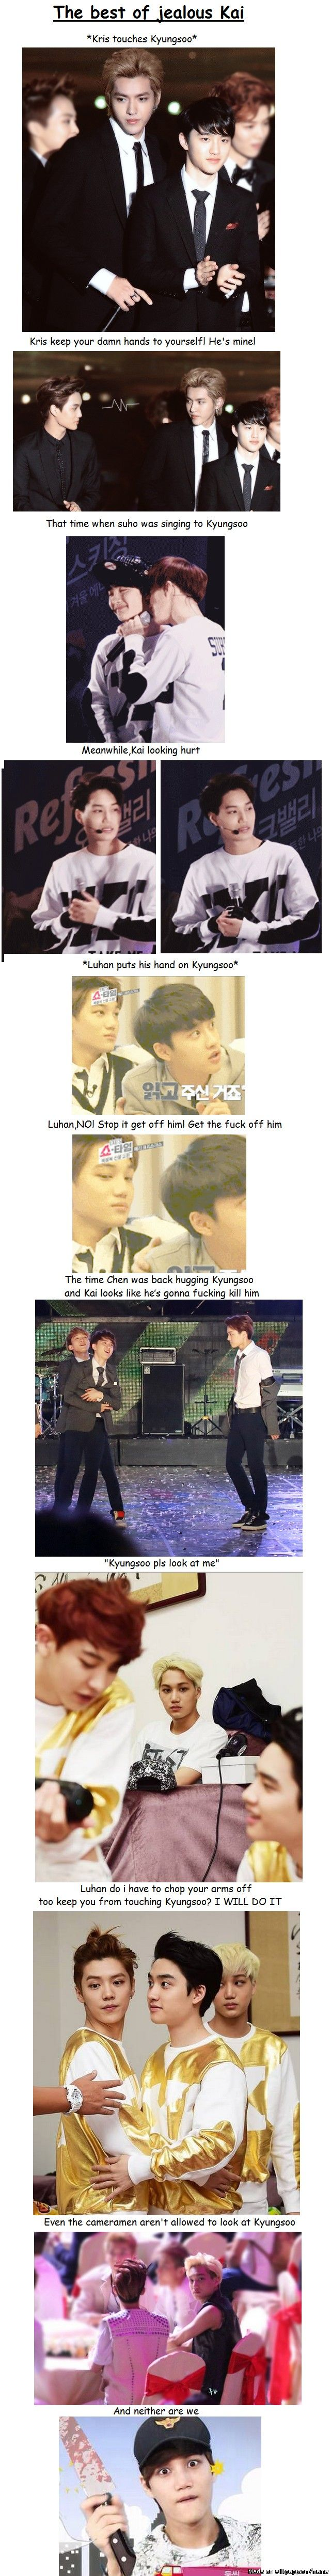 D.O.'s face when Suho sings to him is sooo cute and happy! And Kai does look like he's going to kill Chen.